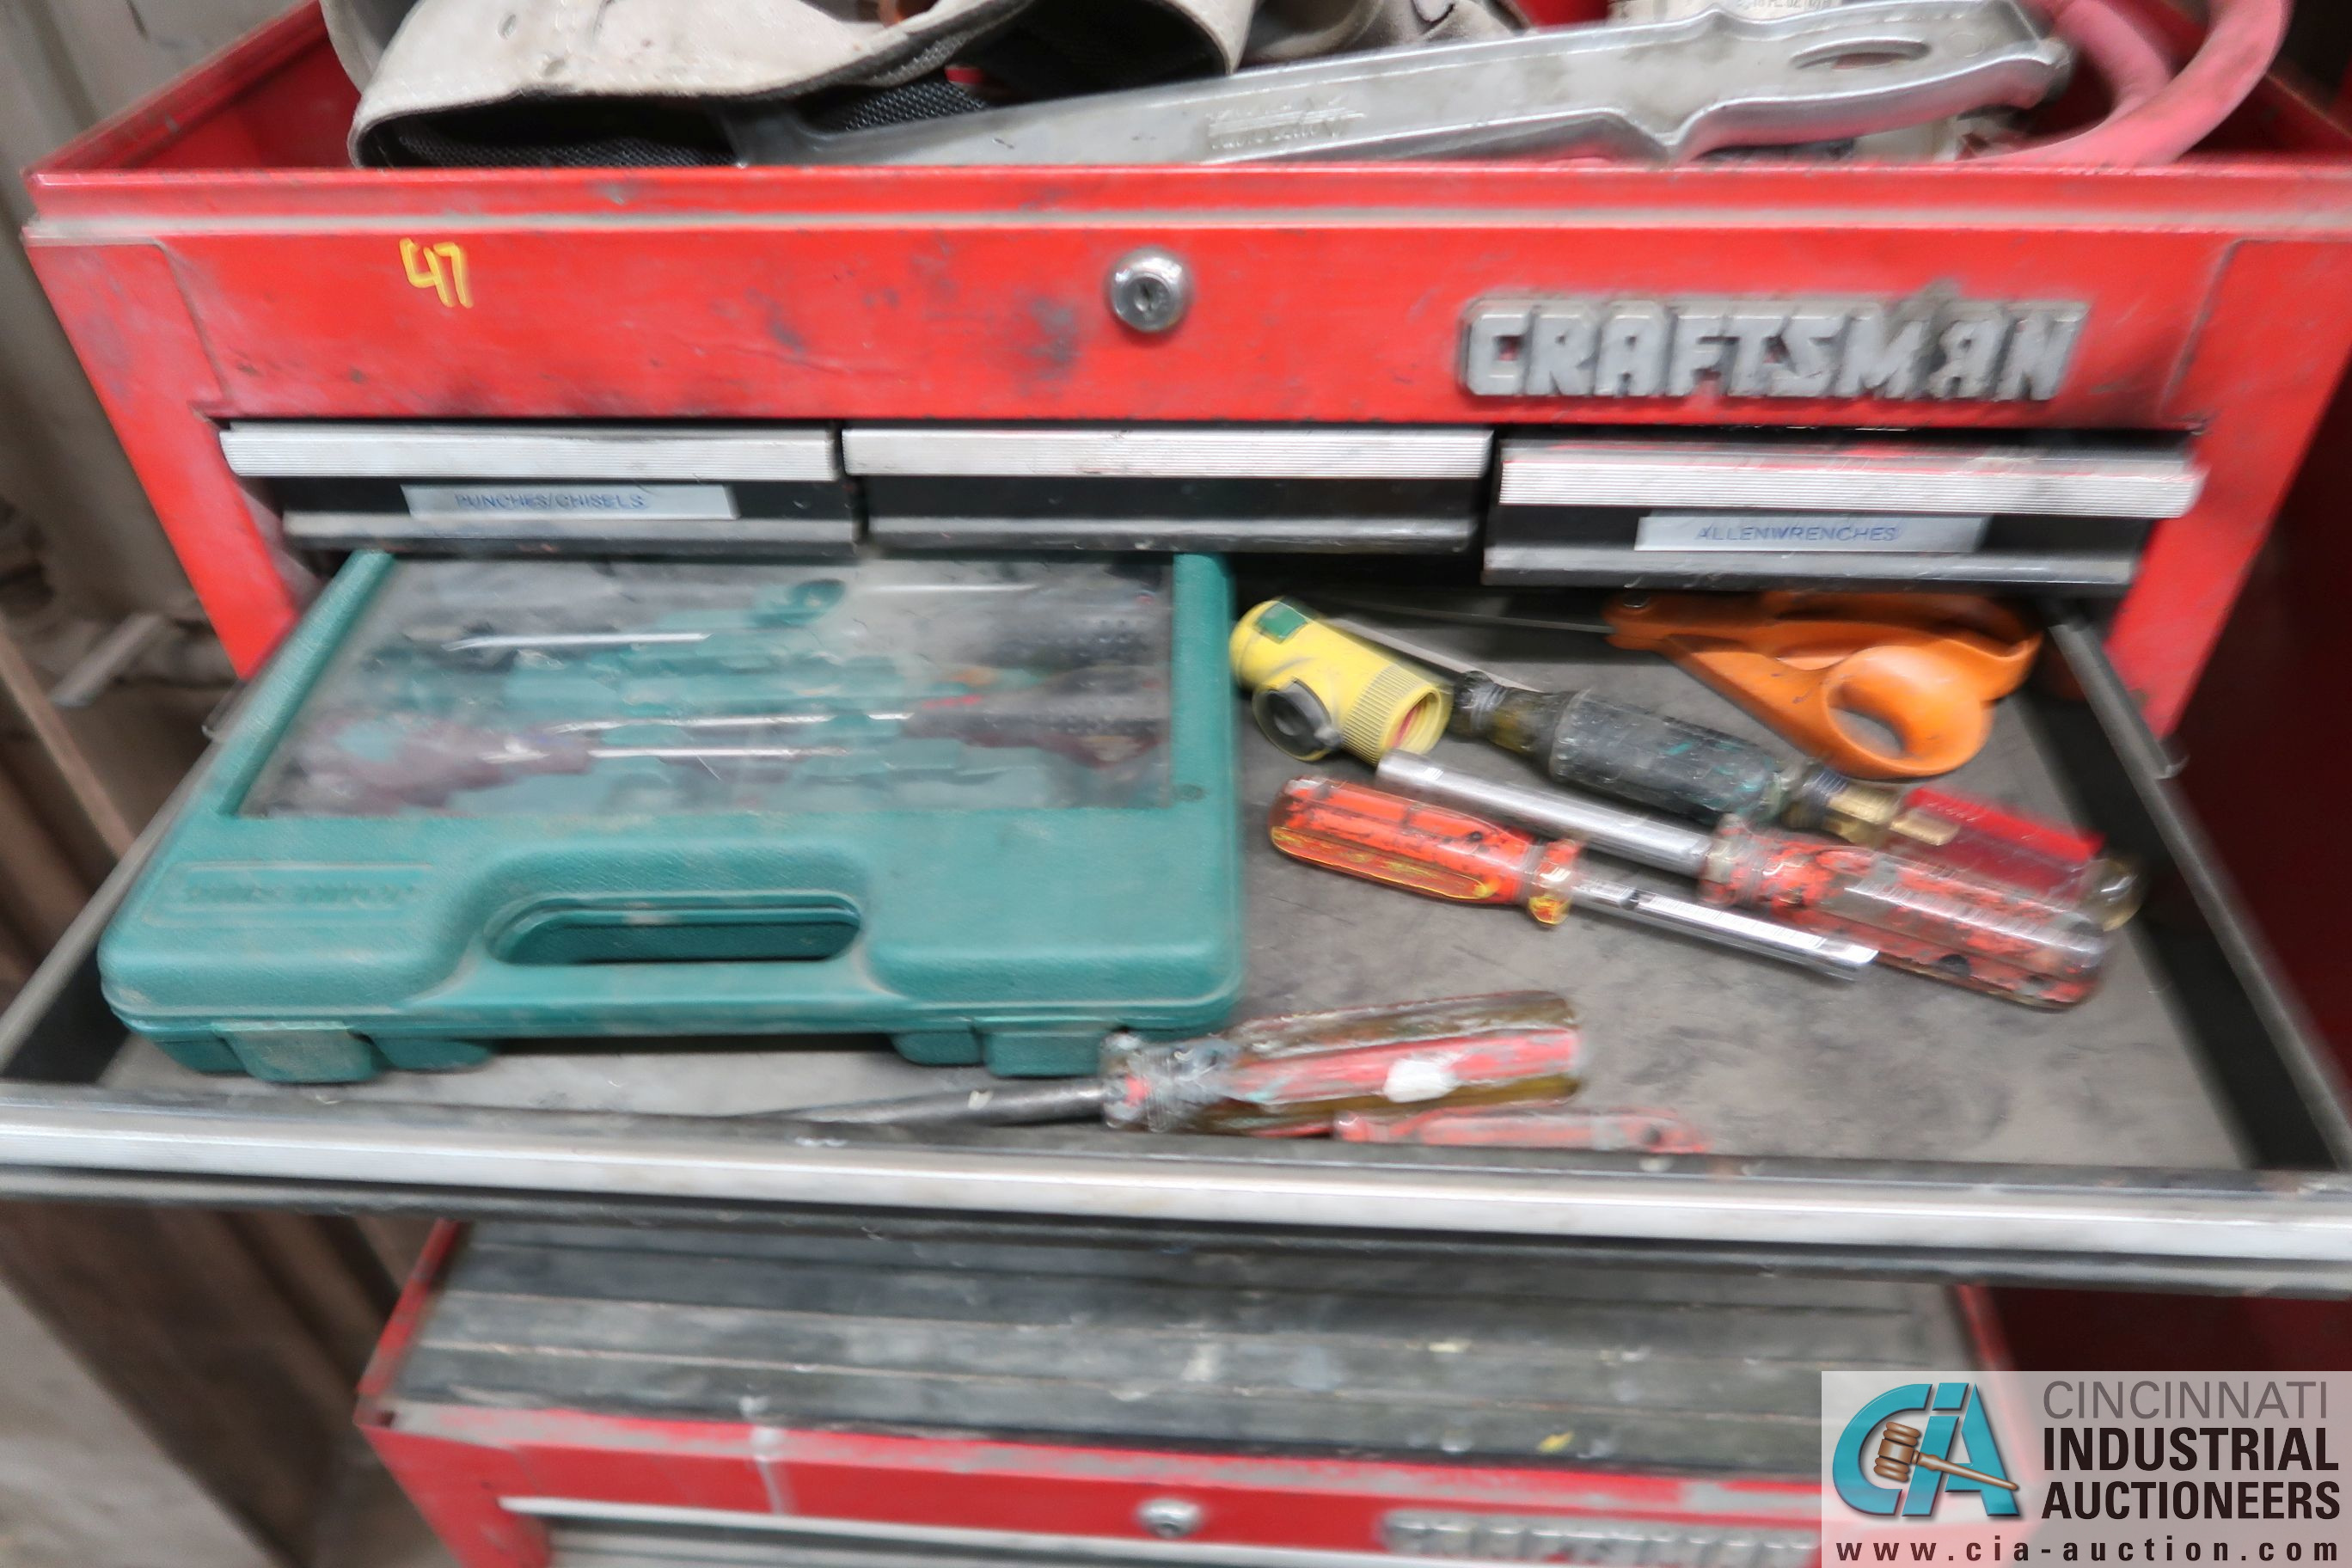 13-DRAWER CRAFTSMAN PORTABLE TOOLBOX WITH TOOLS - Image 2 of 5